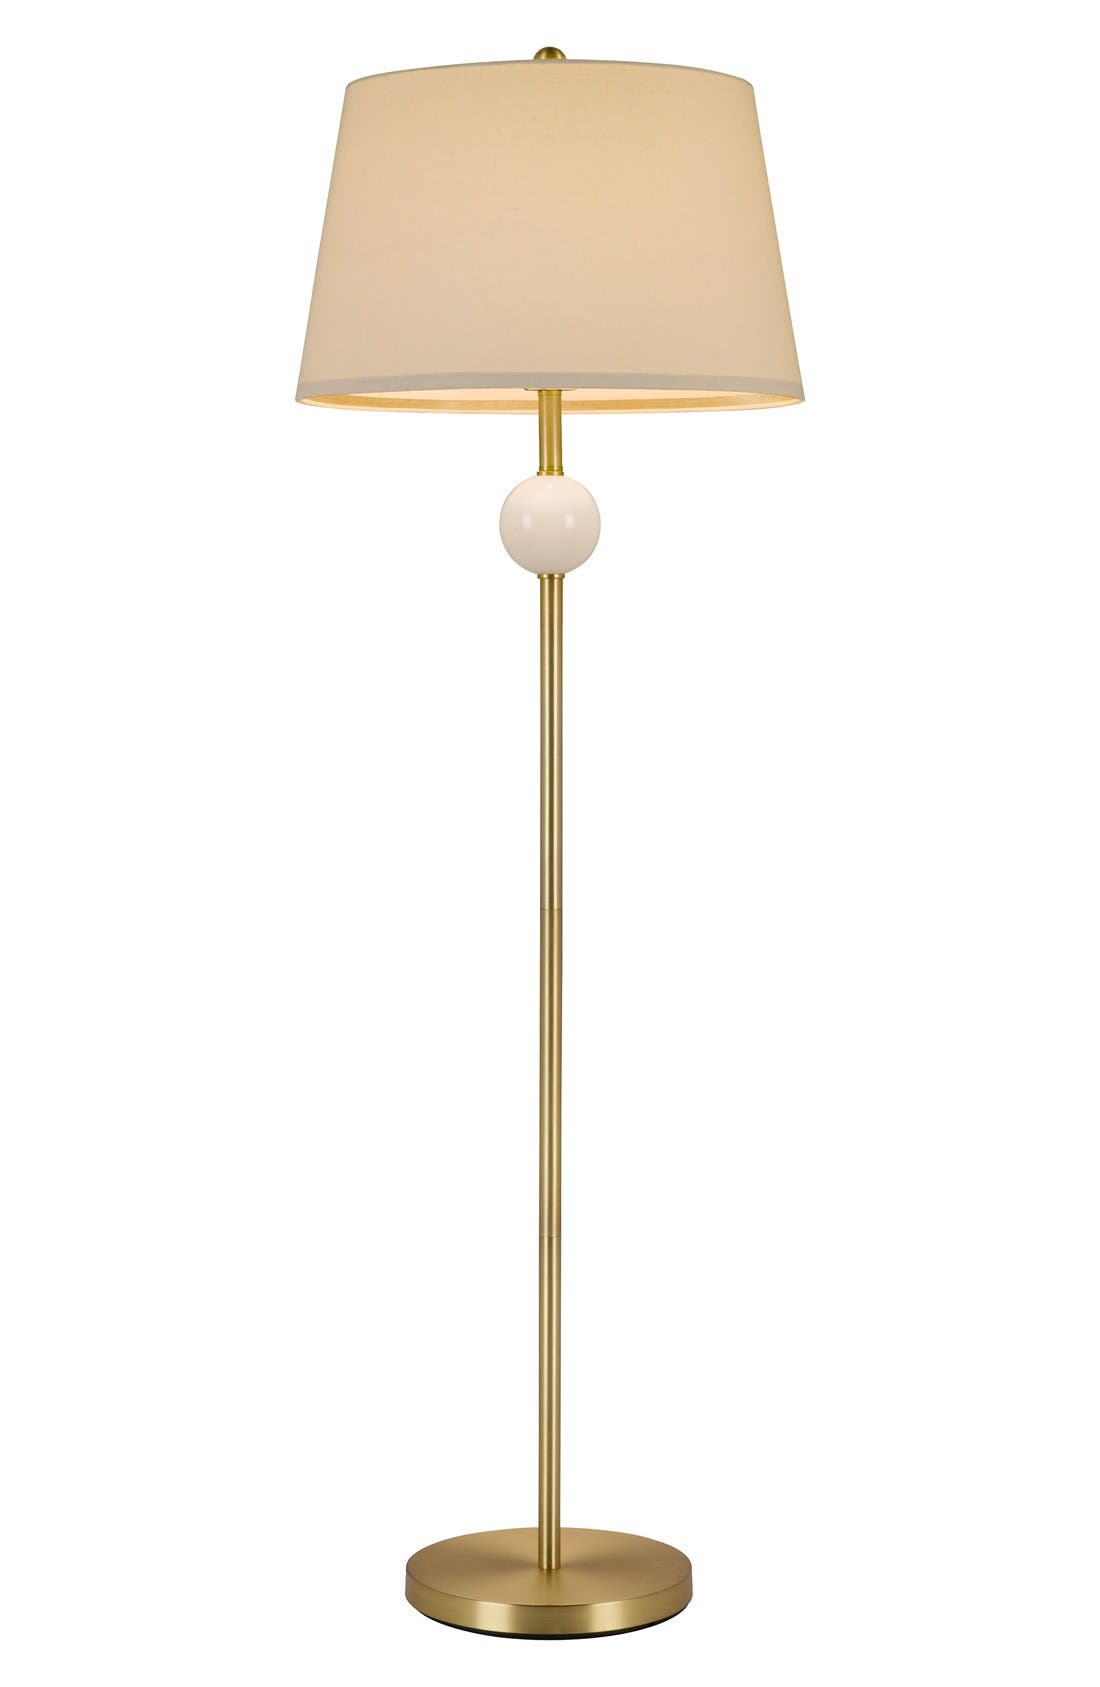 Stacked Ball Floor Lamp,                             Main thumbnail 1, color,                             White